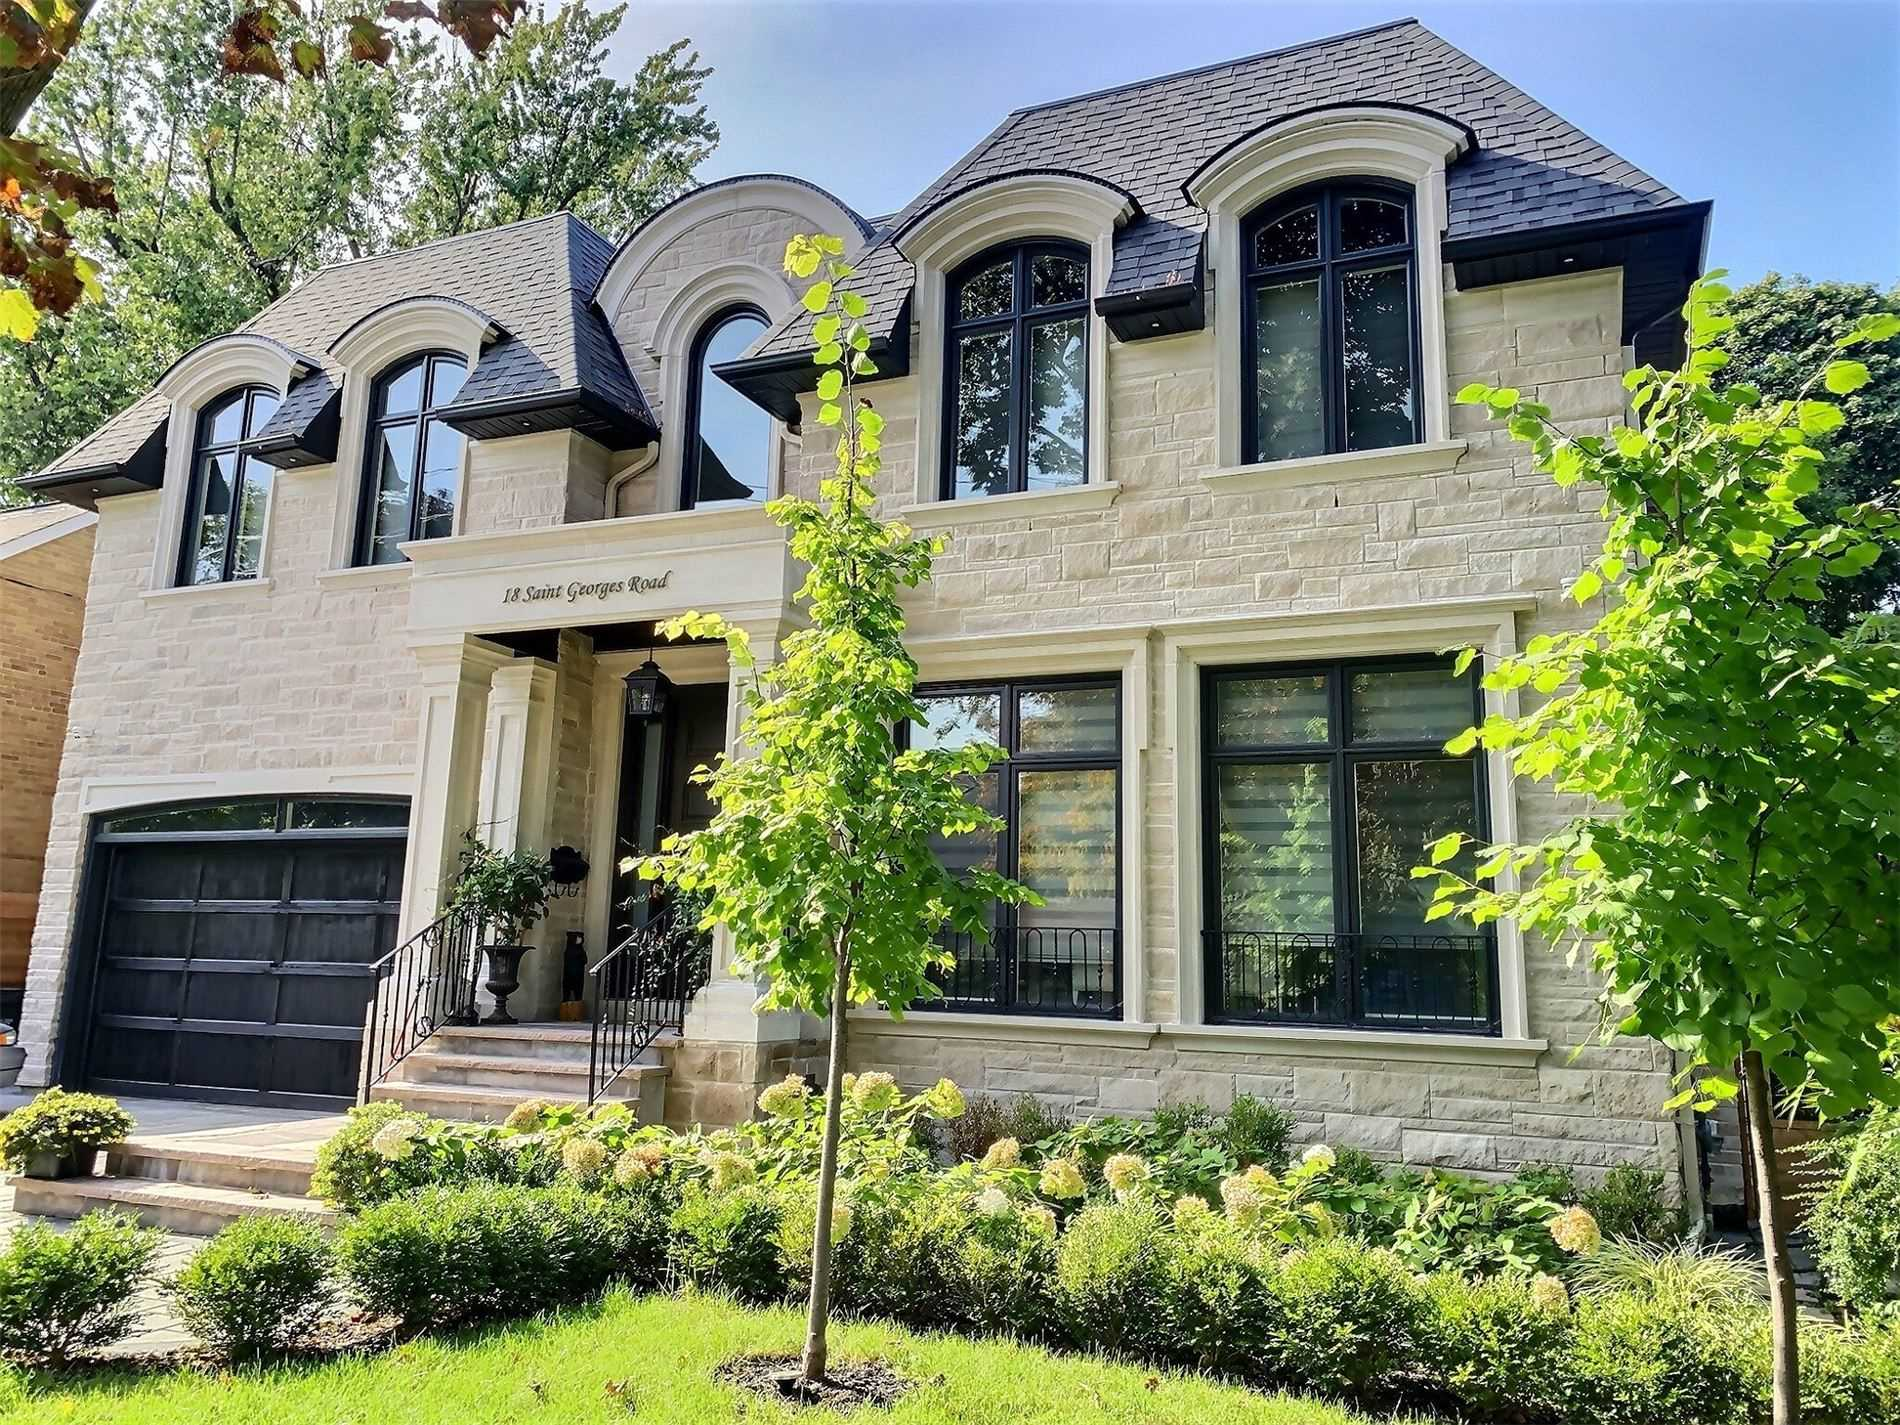 18 St George's Rd, Toronto, Ontario M9A 3T1, 4 Bedrooms Bedrooms, 10 Rooms Rooms,7 BathroomsBathrooms,Detached,For Sale,St George's,W5396131